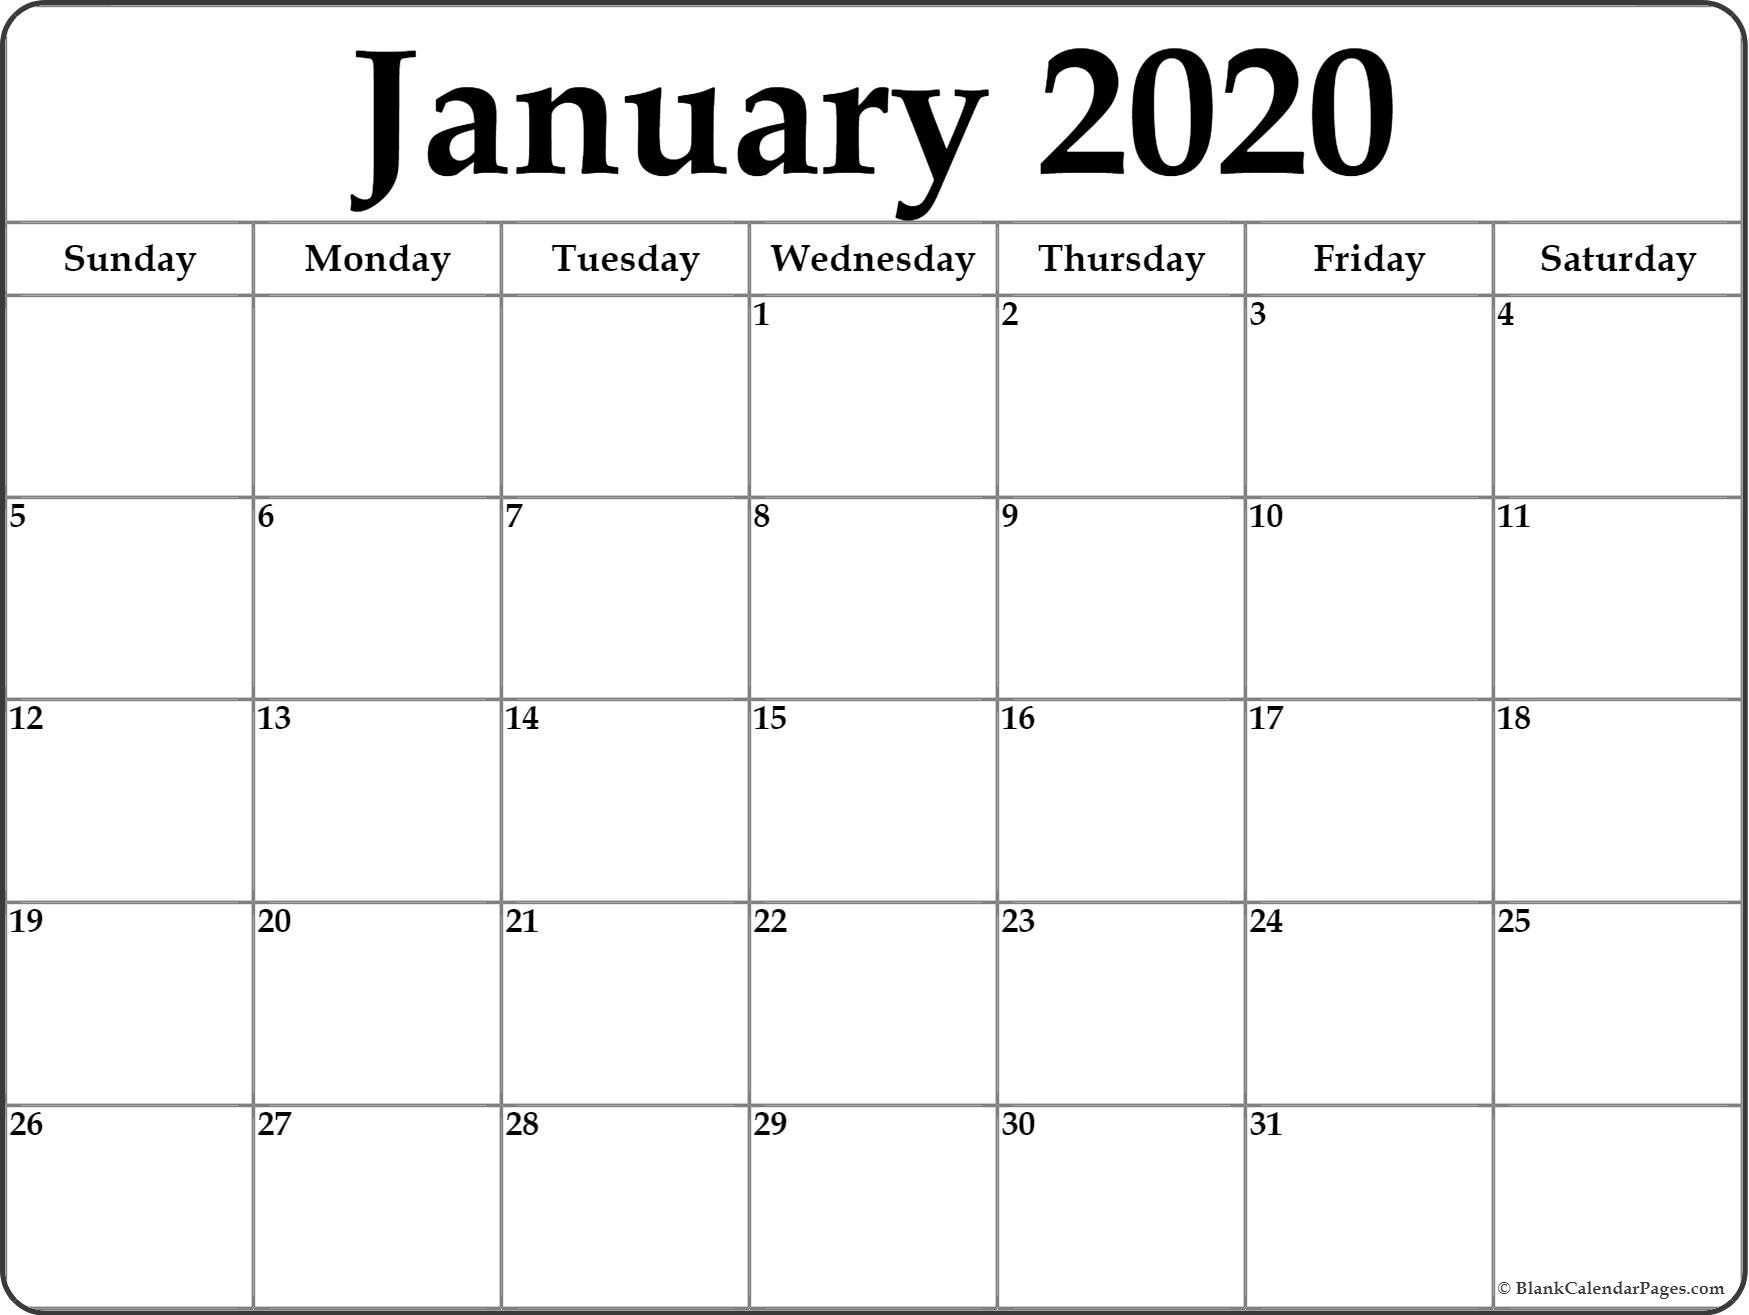 January 2020 Calendar | Free Printable Monthly Calendars  Free Printable 2020 Monthly Calendar